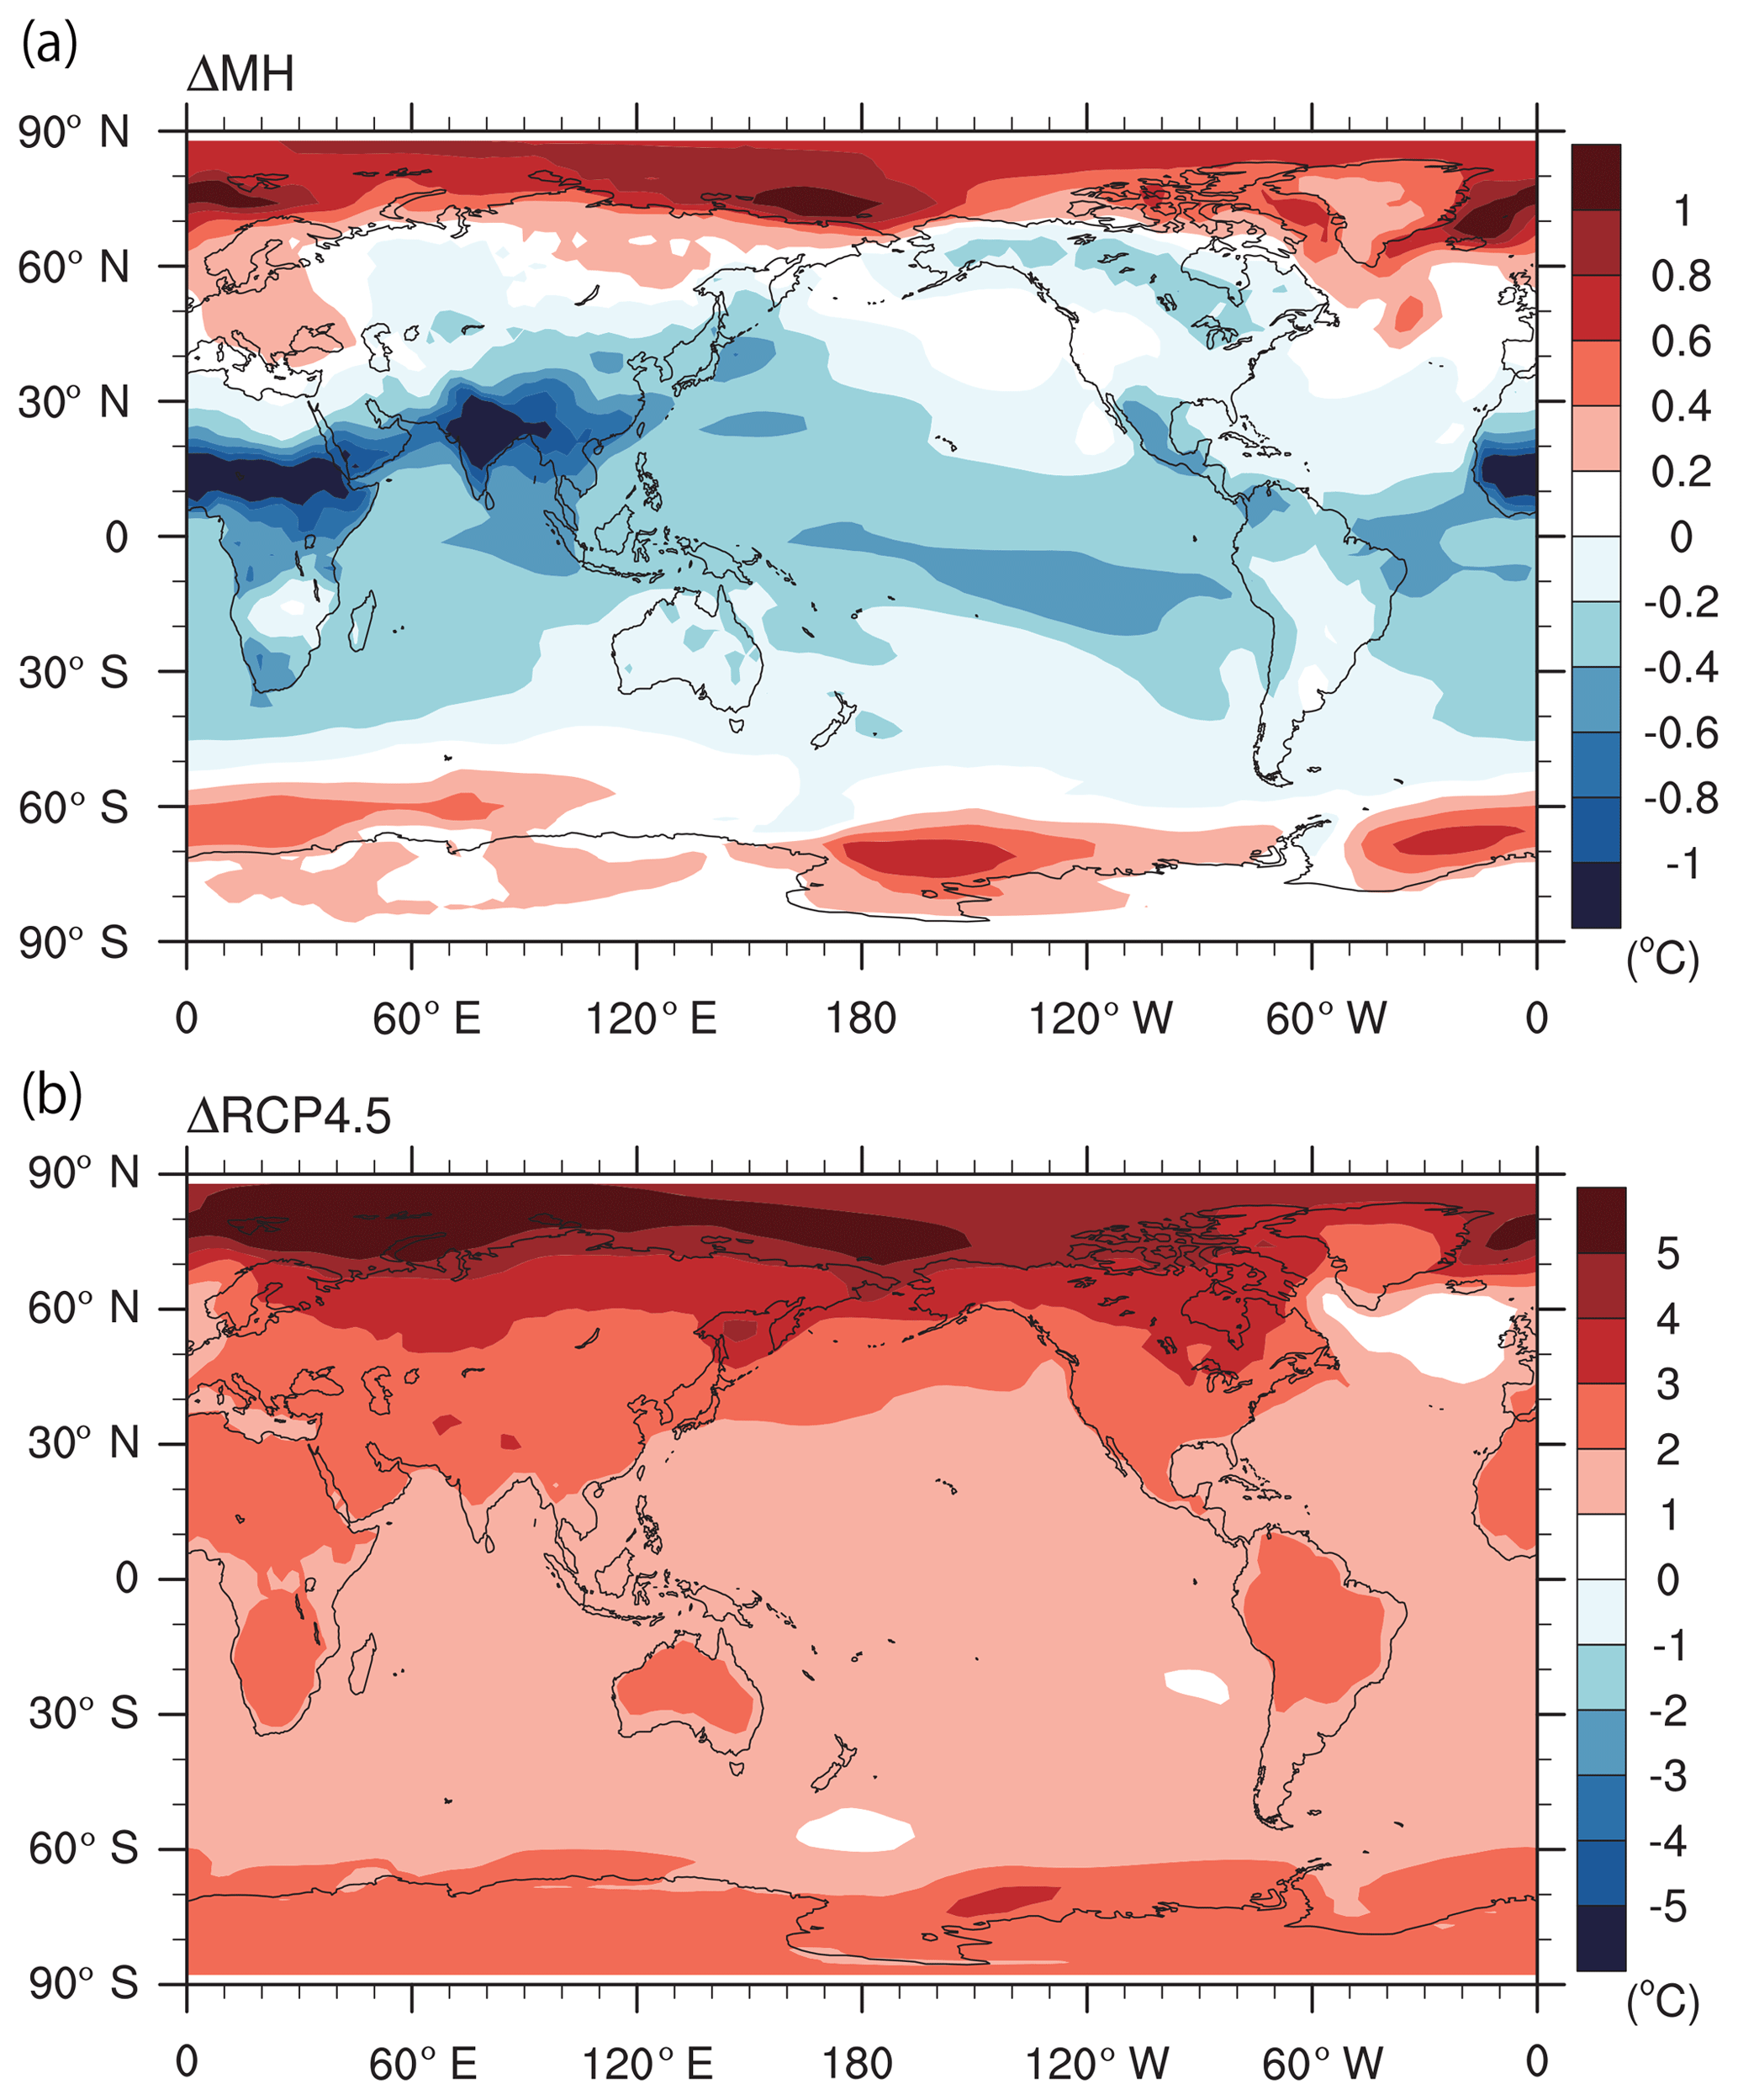 CP - The relevance of mid-Holocene Arctic warming to the future